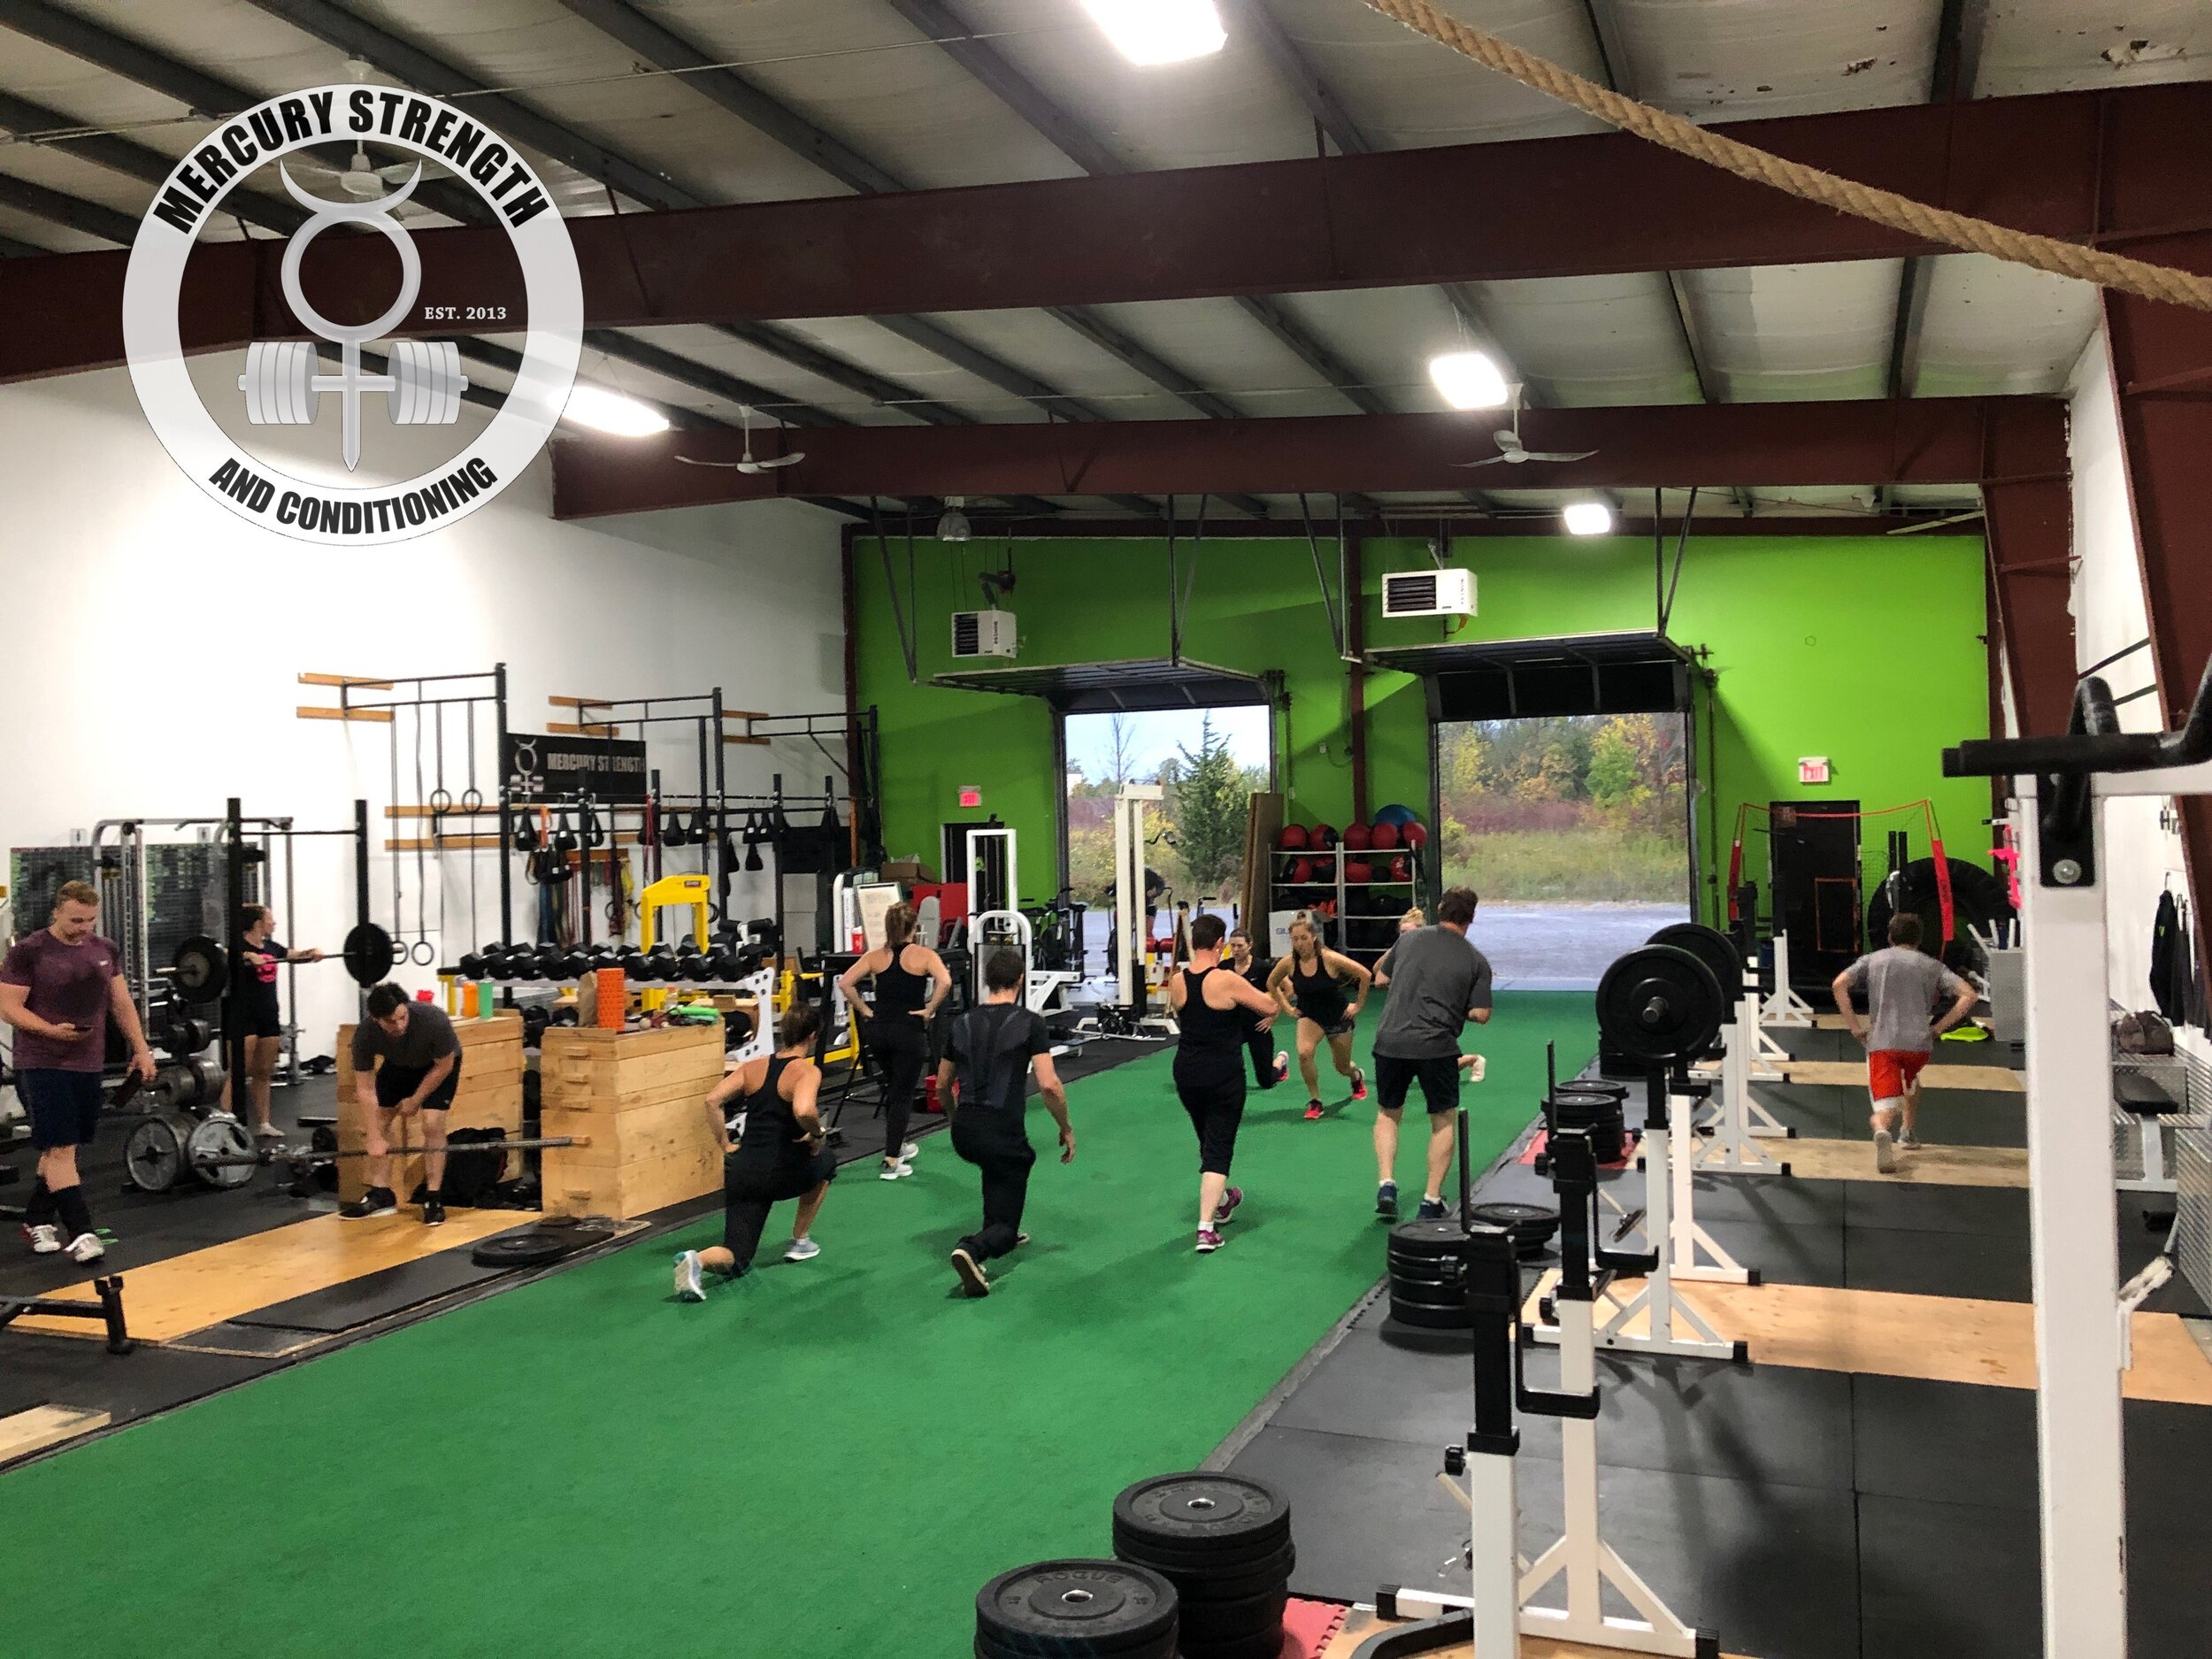 Gym-powerlifting-Olympic lifting-fitness-personal training-training-bootcamp-crossfit-kingston-gym-kingston gym-physique-body building-nutrition-kids-mercury-strength-conditioning-athlete-ontario powerlifting association-OPA-Canadian powerlifting federation-CPF-Lunge.JPG